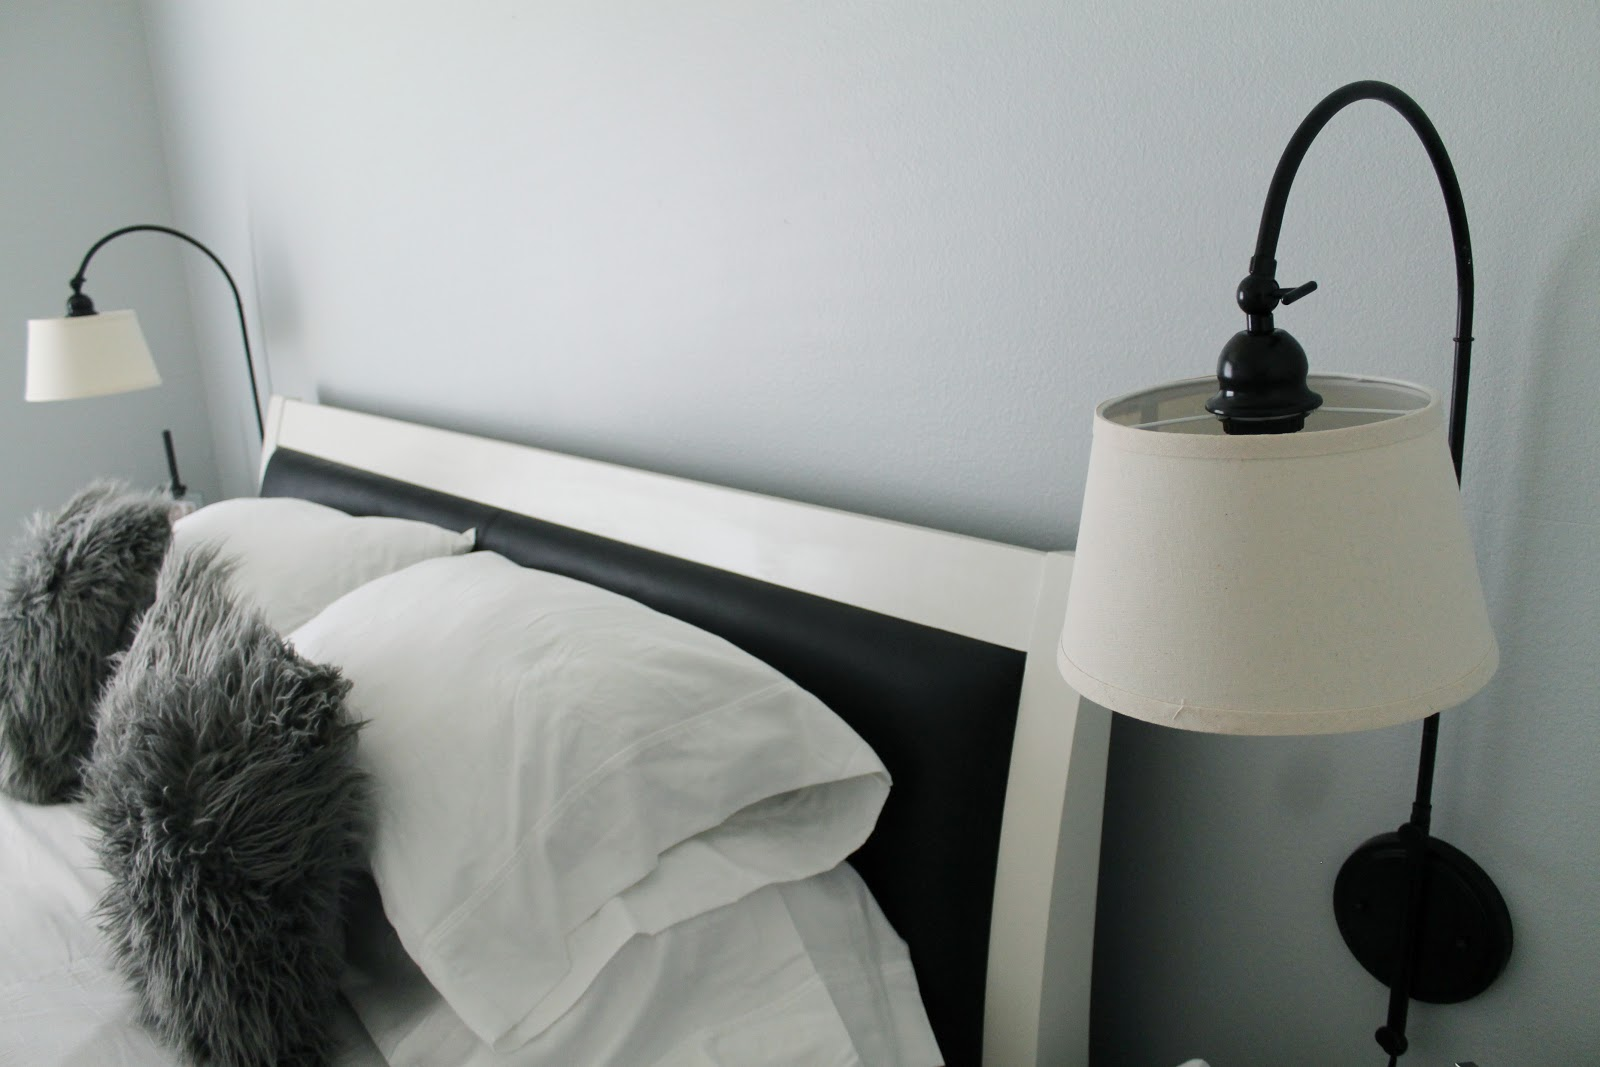 Wall Mounted Lamps For Bedrooms : New, Cheap, Modern + Traditional Wall Lamps in the Bedroom - Chris Loves Julia